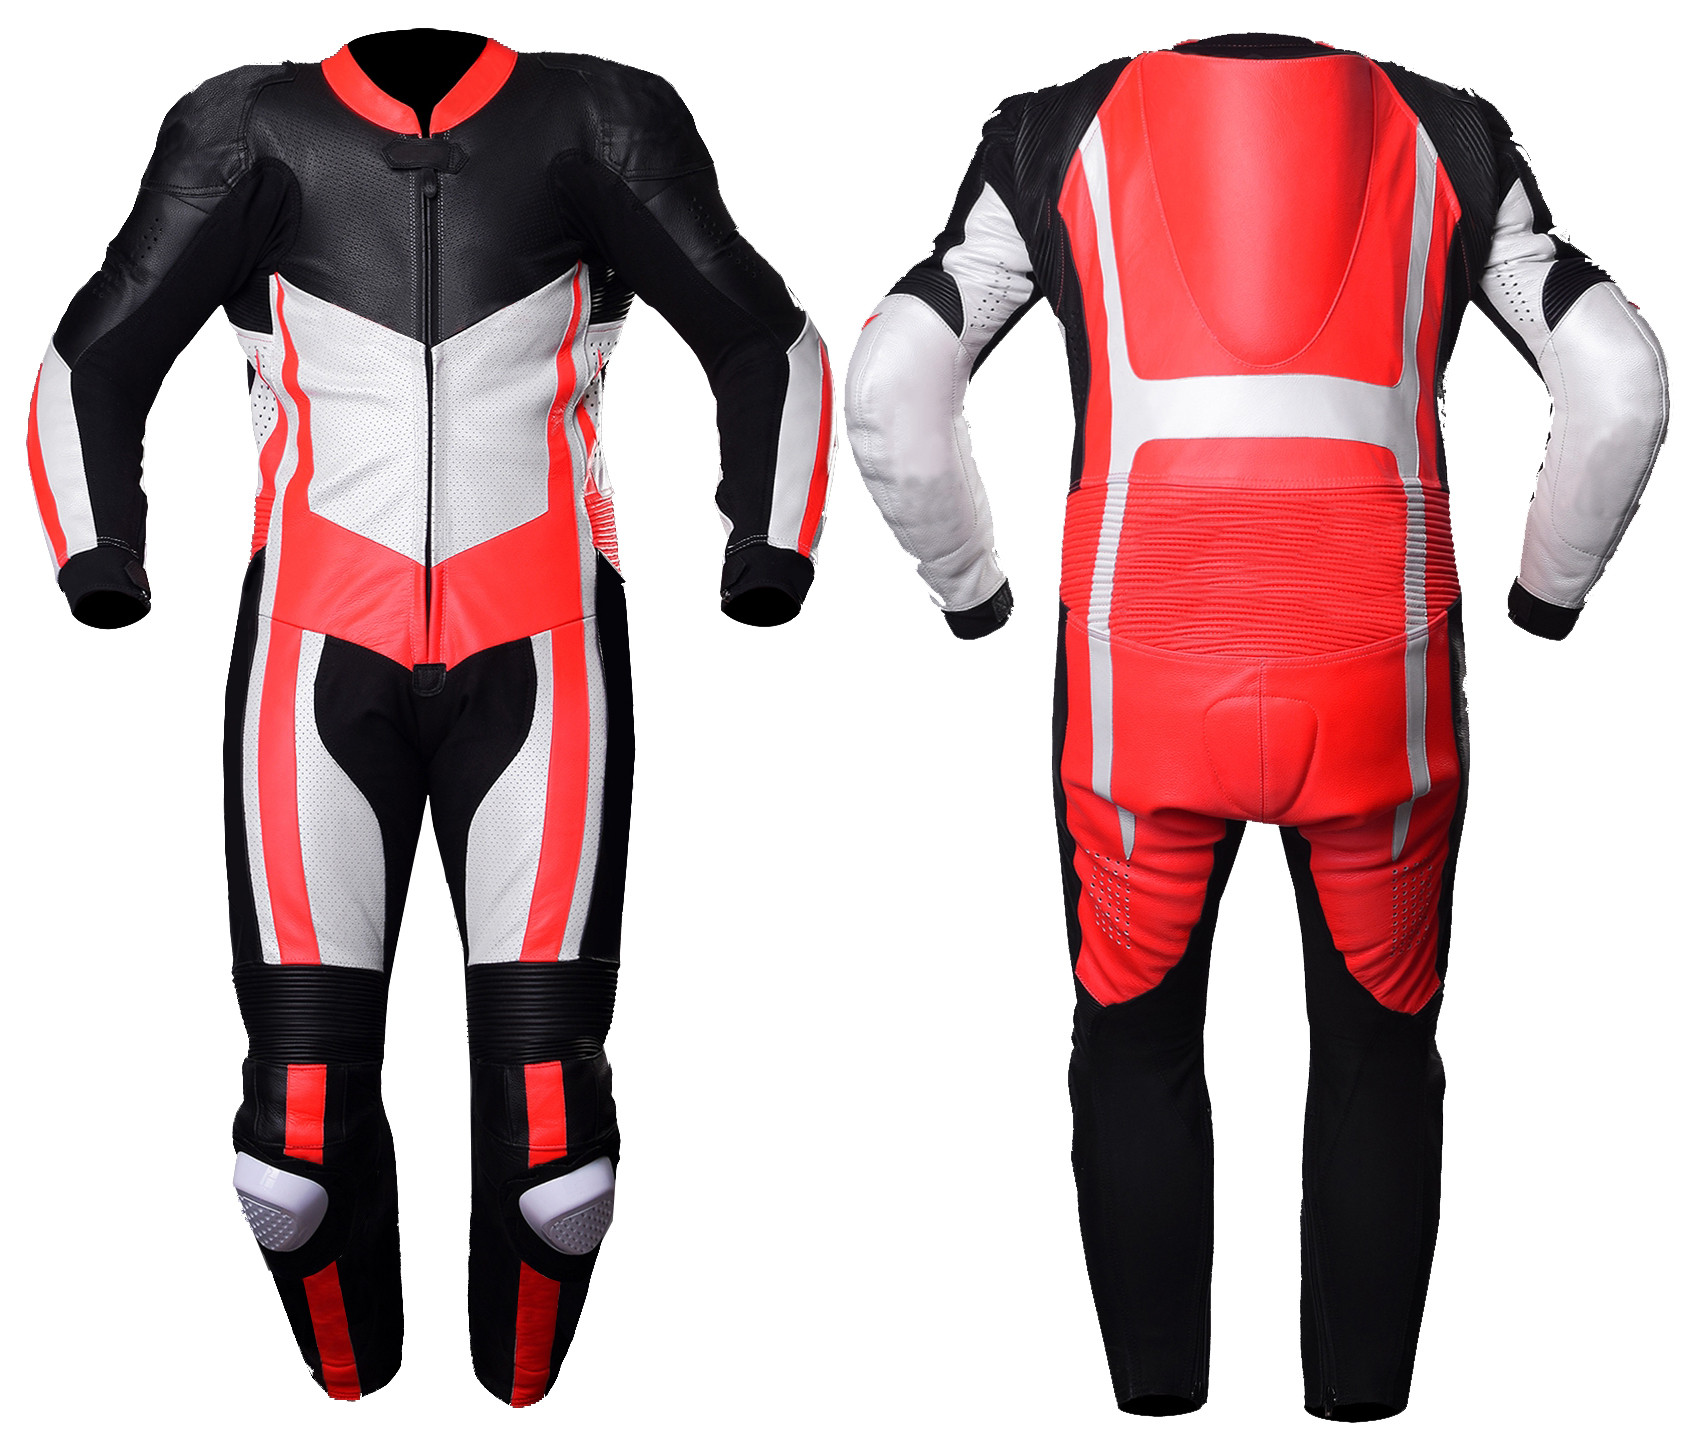 739e9899369 RA-15001 WINDPRO RACE SUIT